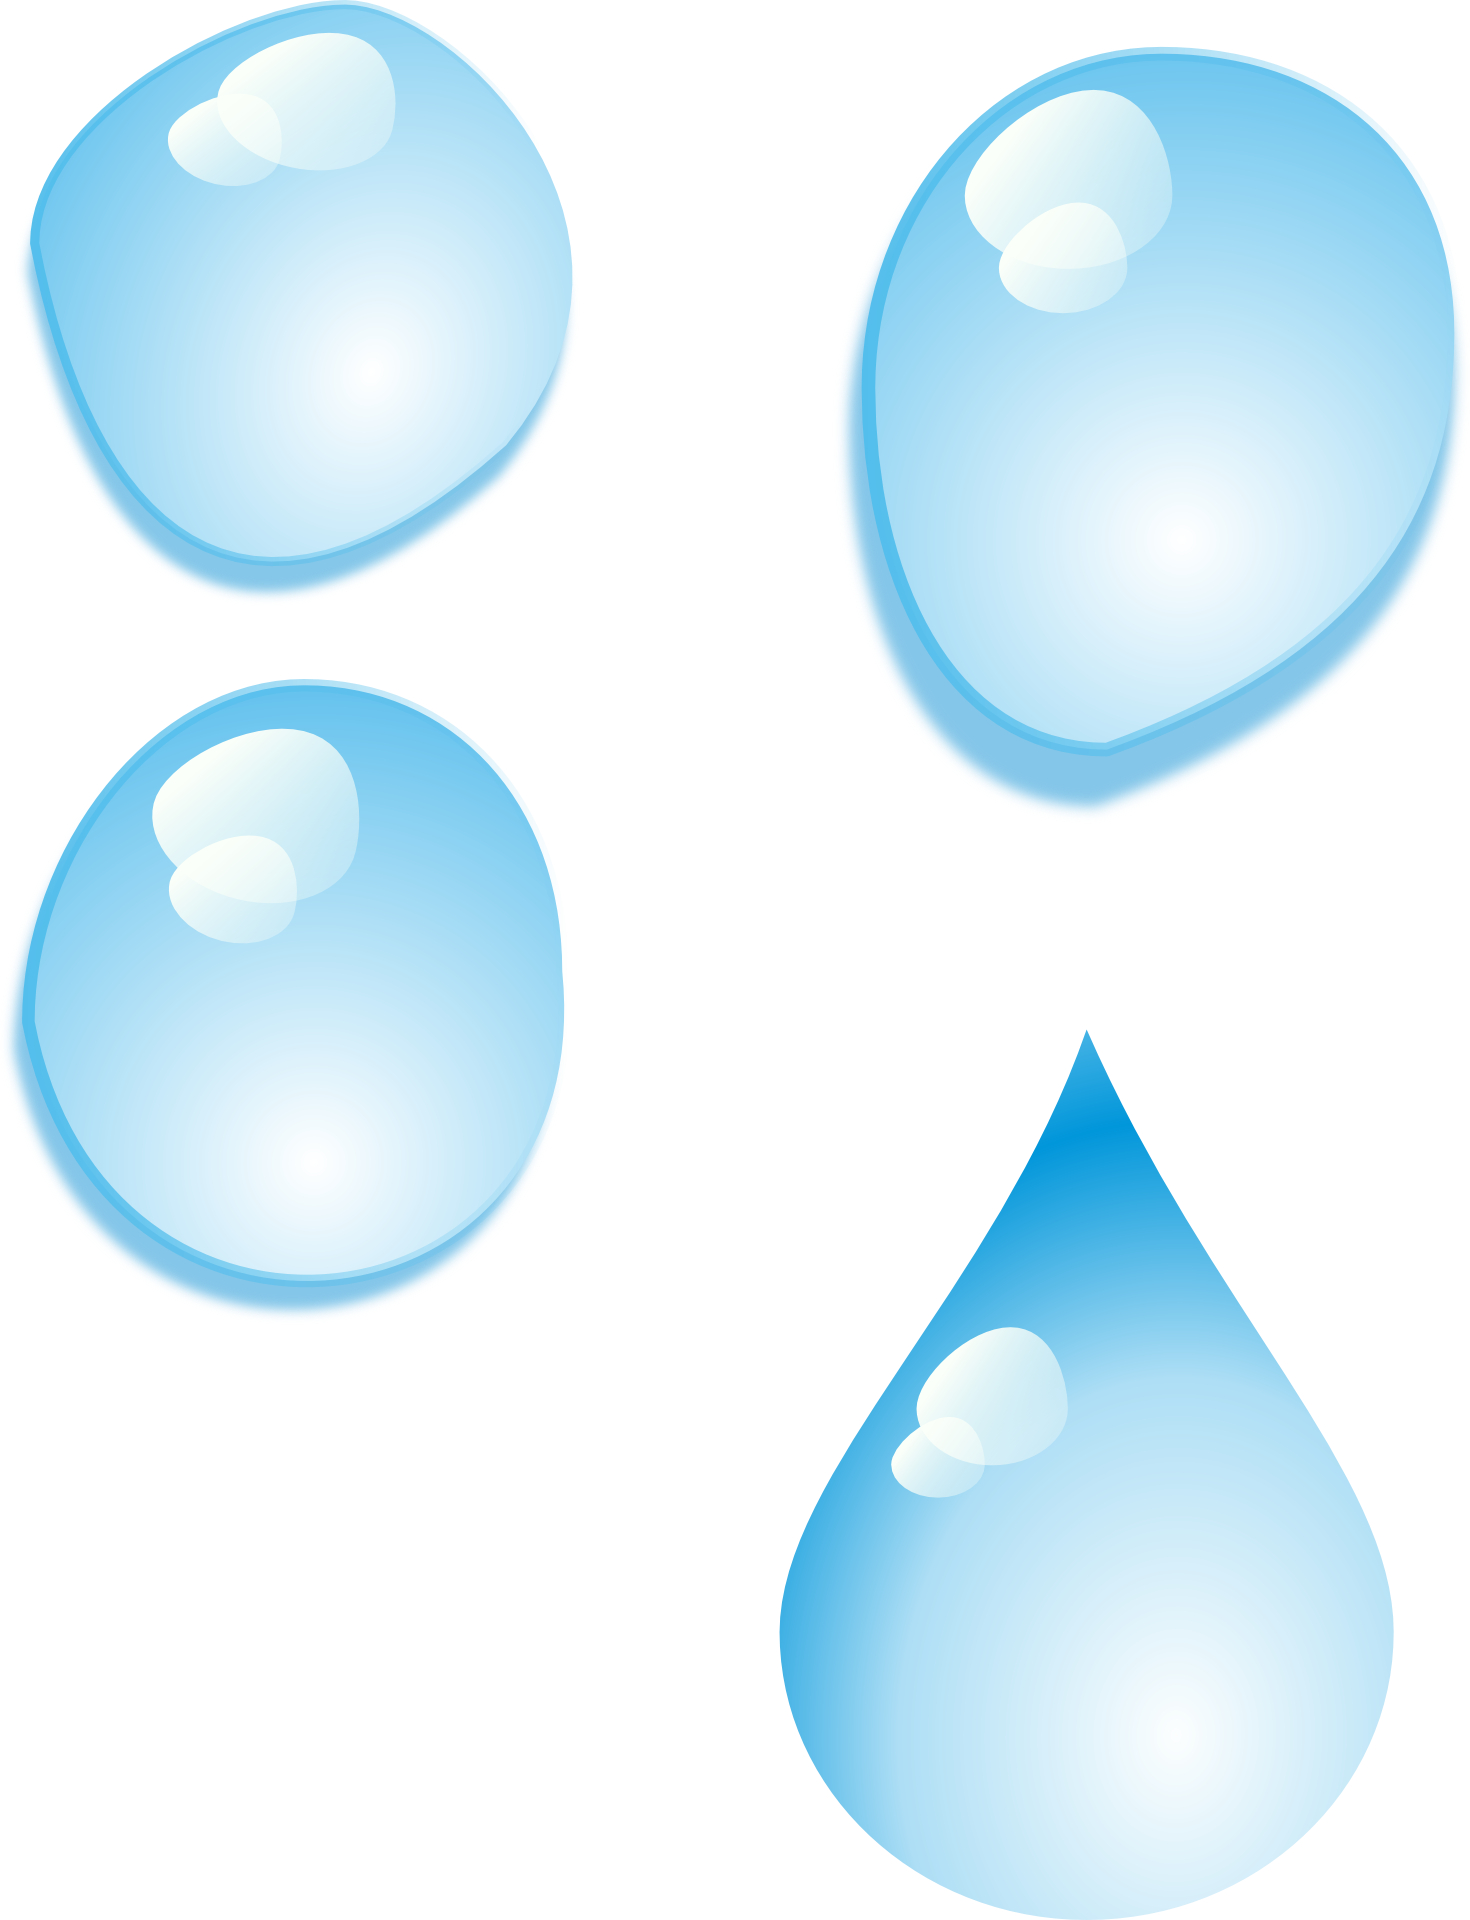 Cartoon Water Drop Clip Art